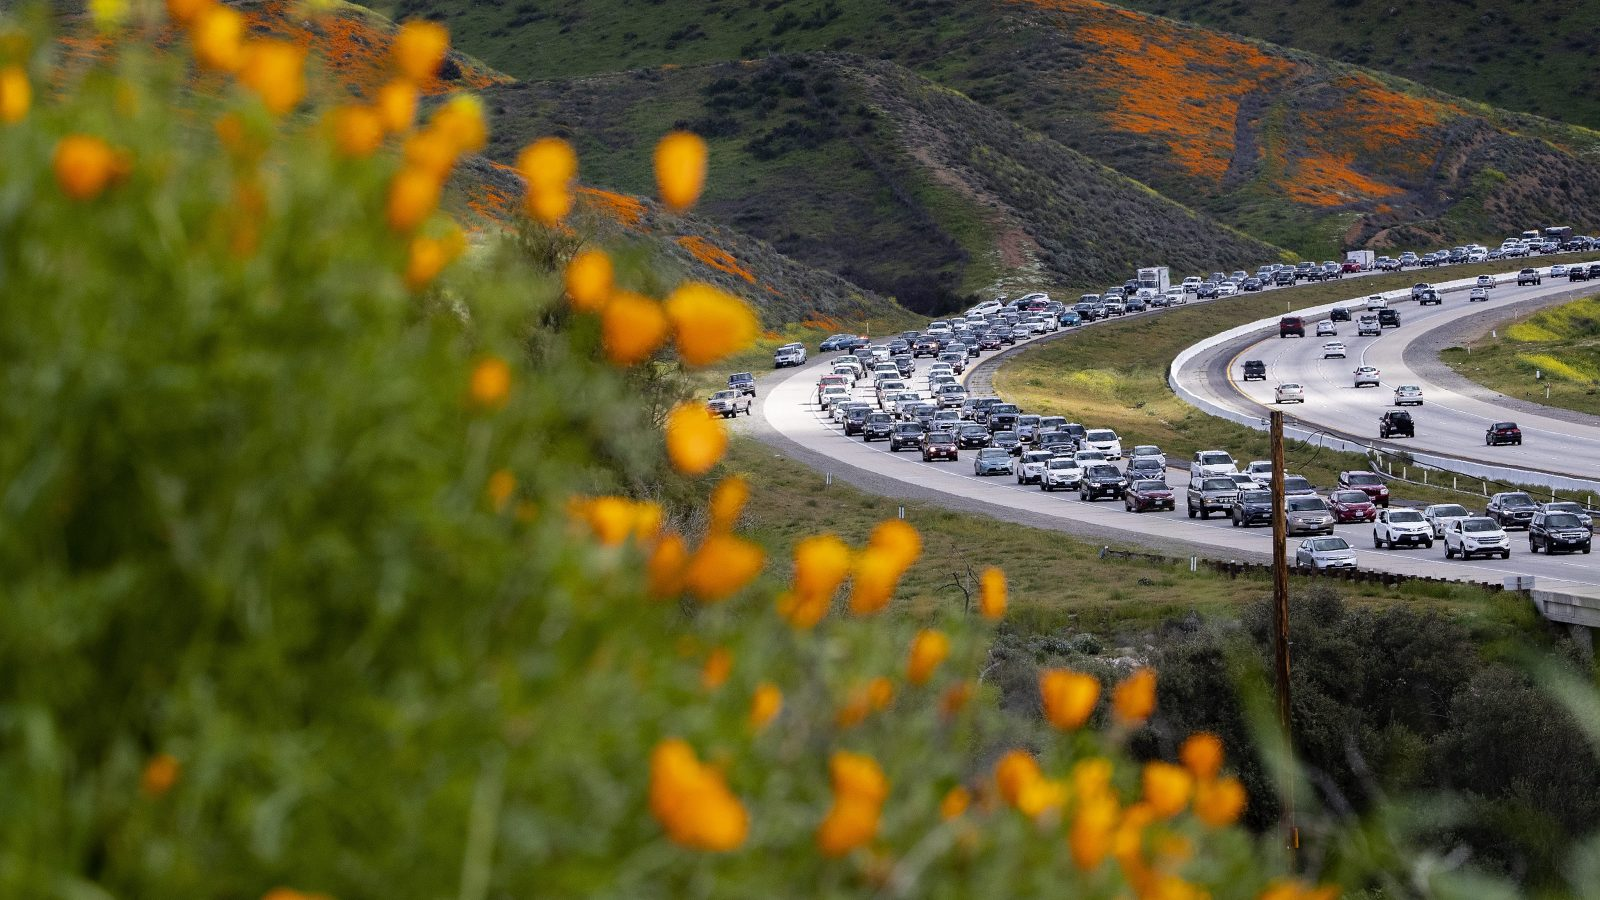 Traffic and poppies in California